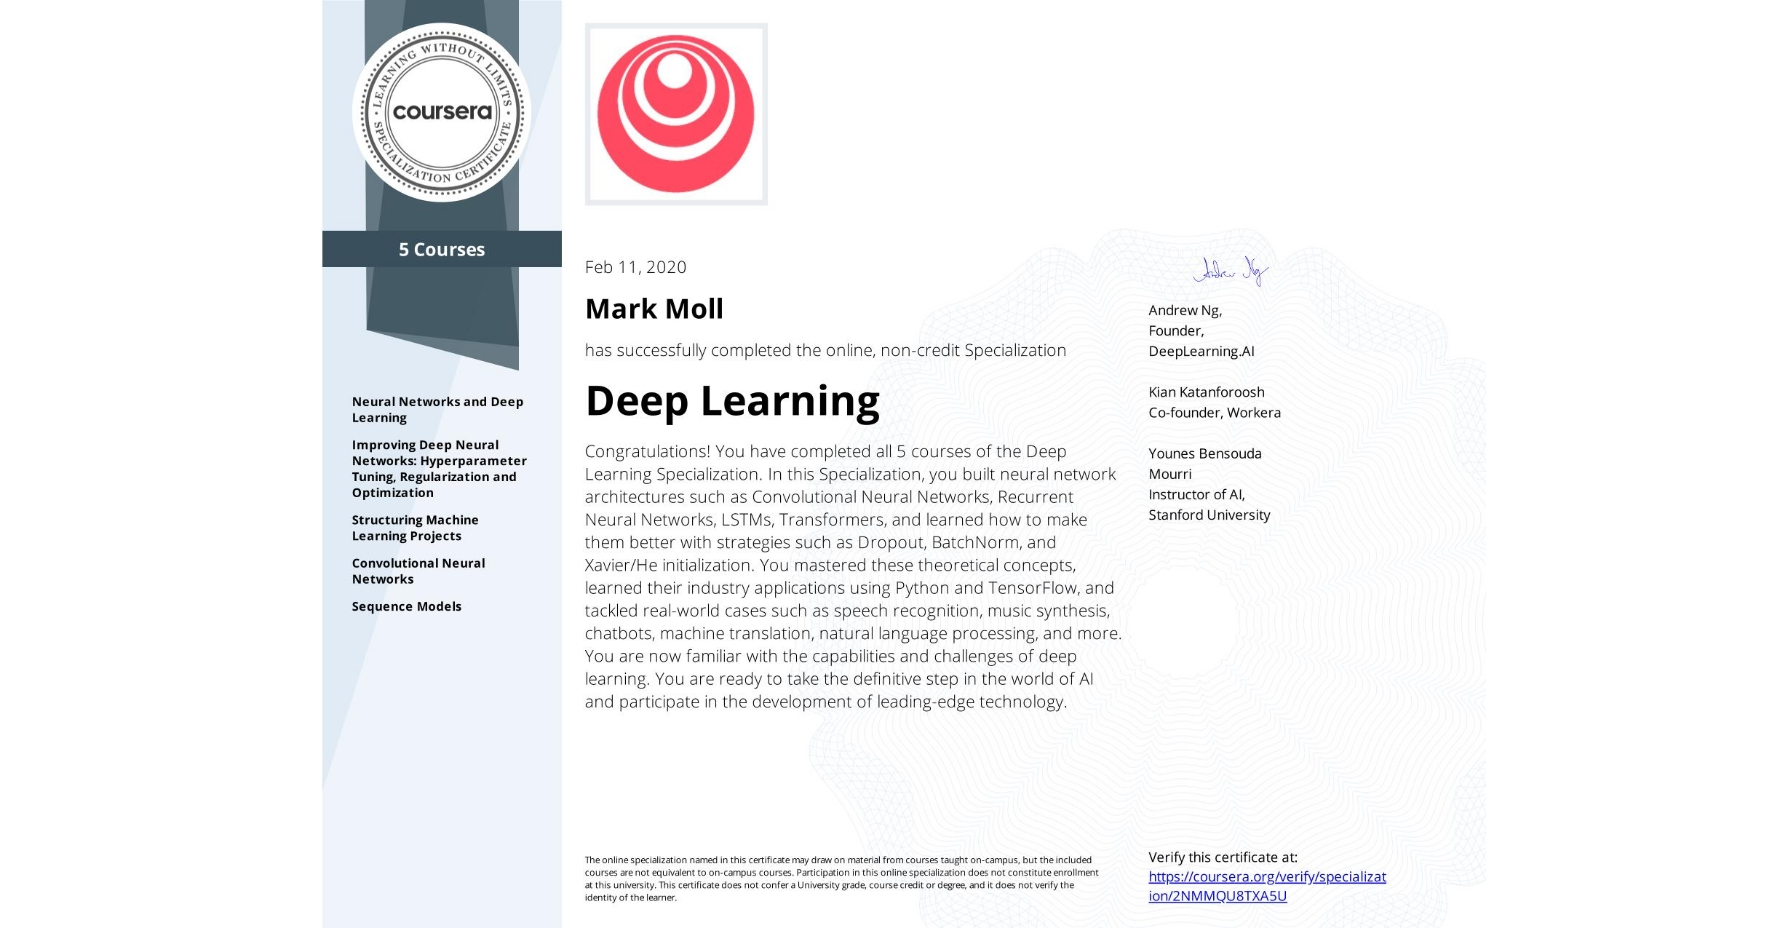 View certificate for Mark Moll, Deep Learning, offered through Coursera. The Deep Learning Specialization is designed to prepare learners to participate in the development of cutting-edge AI technology, and to understand the capability, the challenges, and the consequences of the rise of deep learning. Through five interconnected courses, learners develop a profound knowledge of the hottest AI algorithms, mastering deep learning from its foundations (neural networks) to its industry applications (Computer Vision, Natural Language Processing, Speech Recognition, etc.).